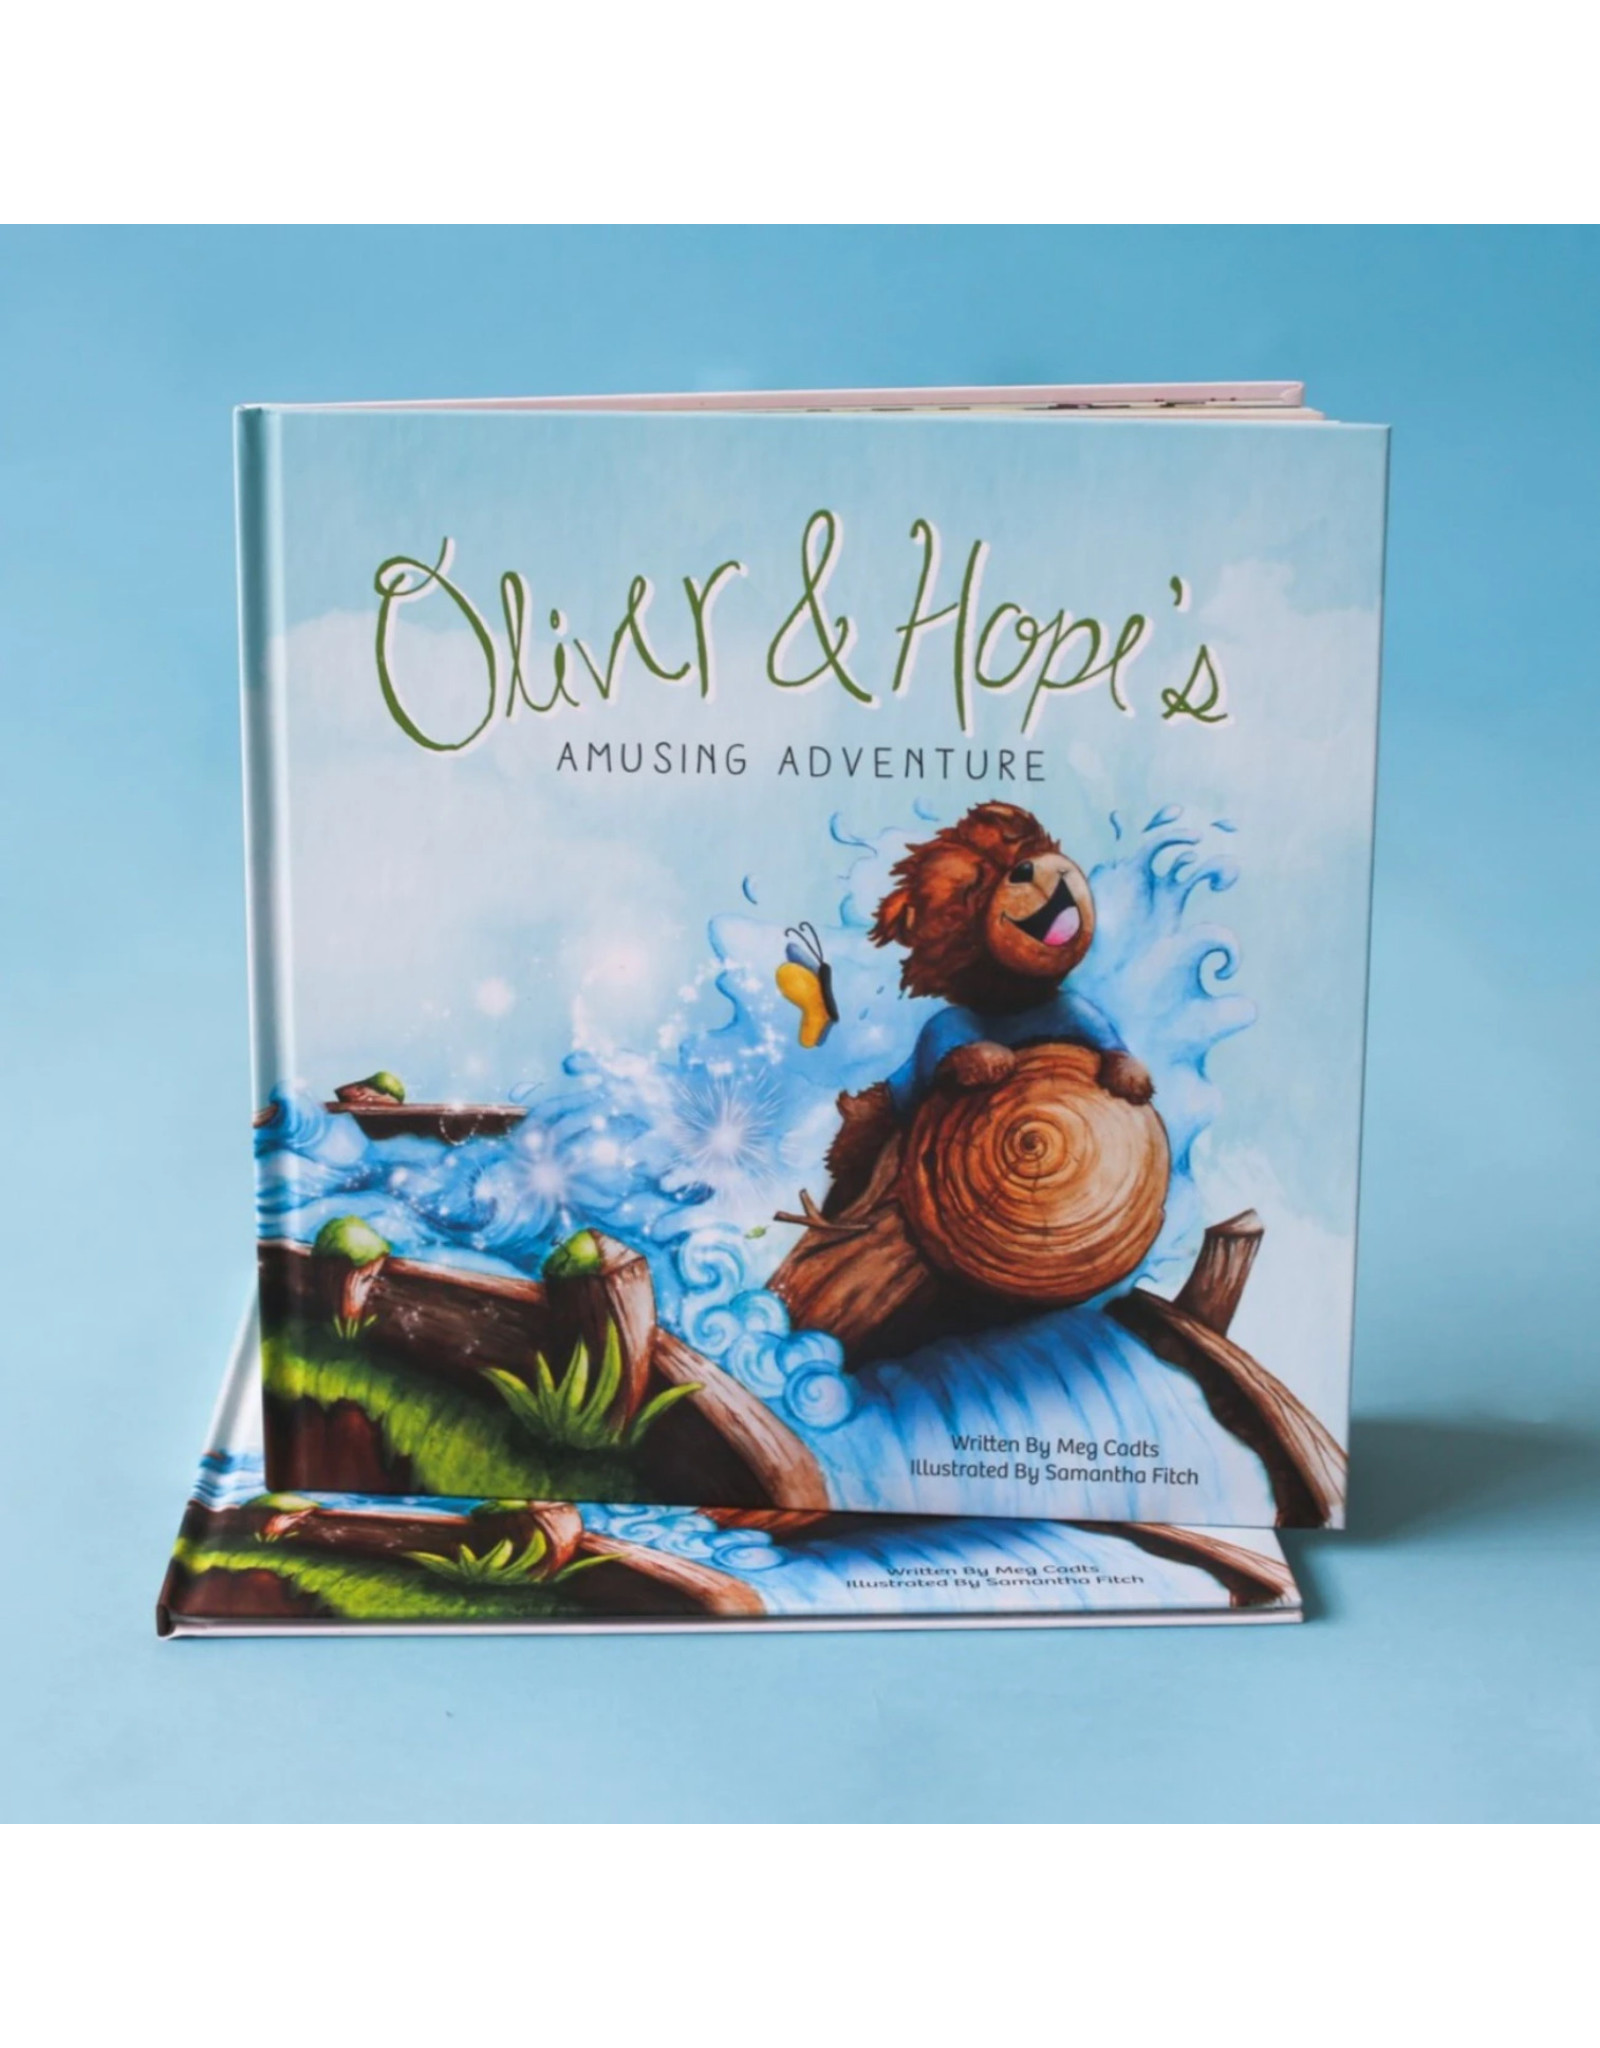 Oliver and Hope's Amusing Adventure® - Hardcover